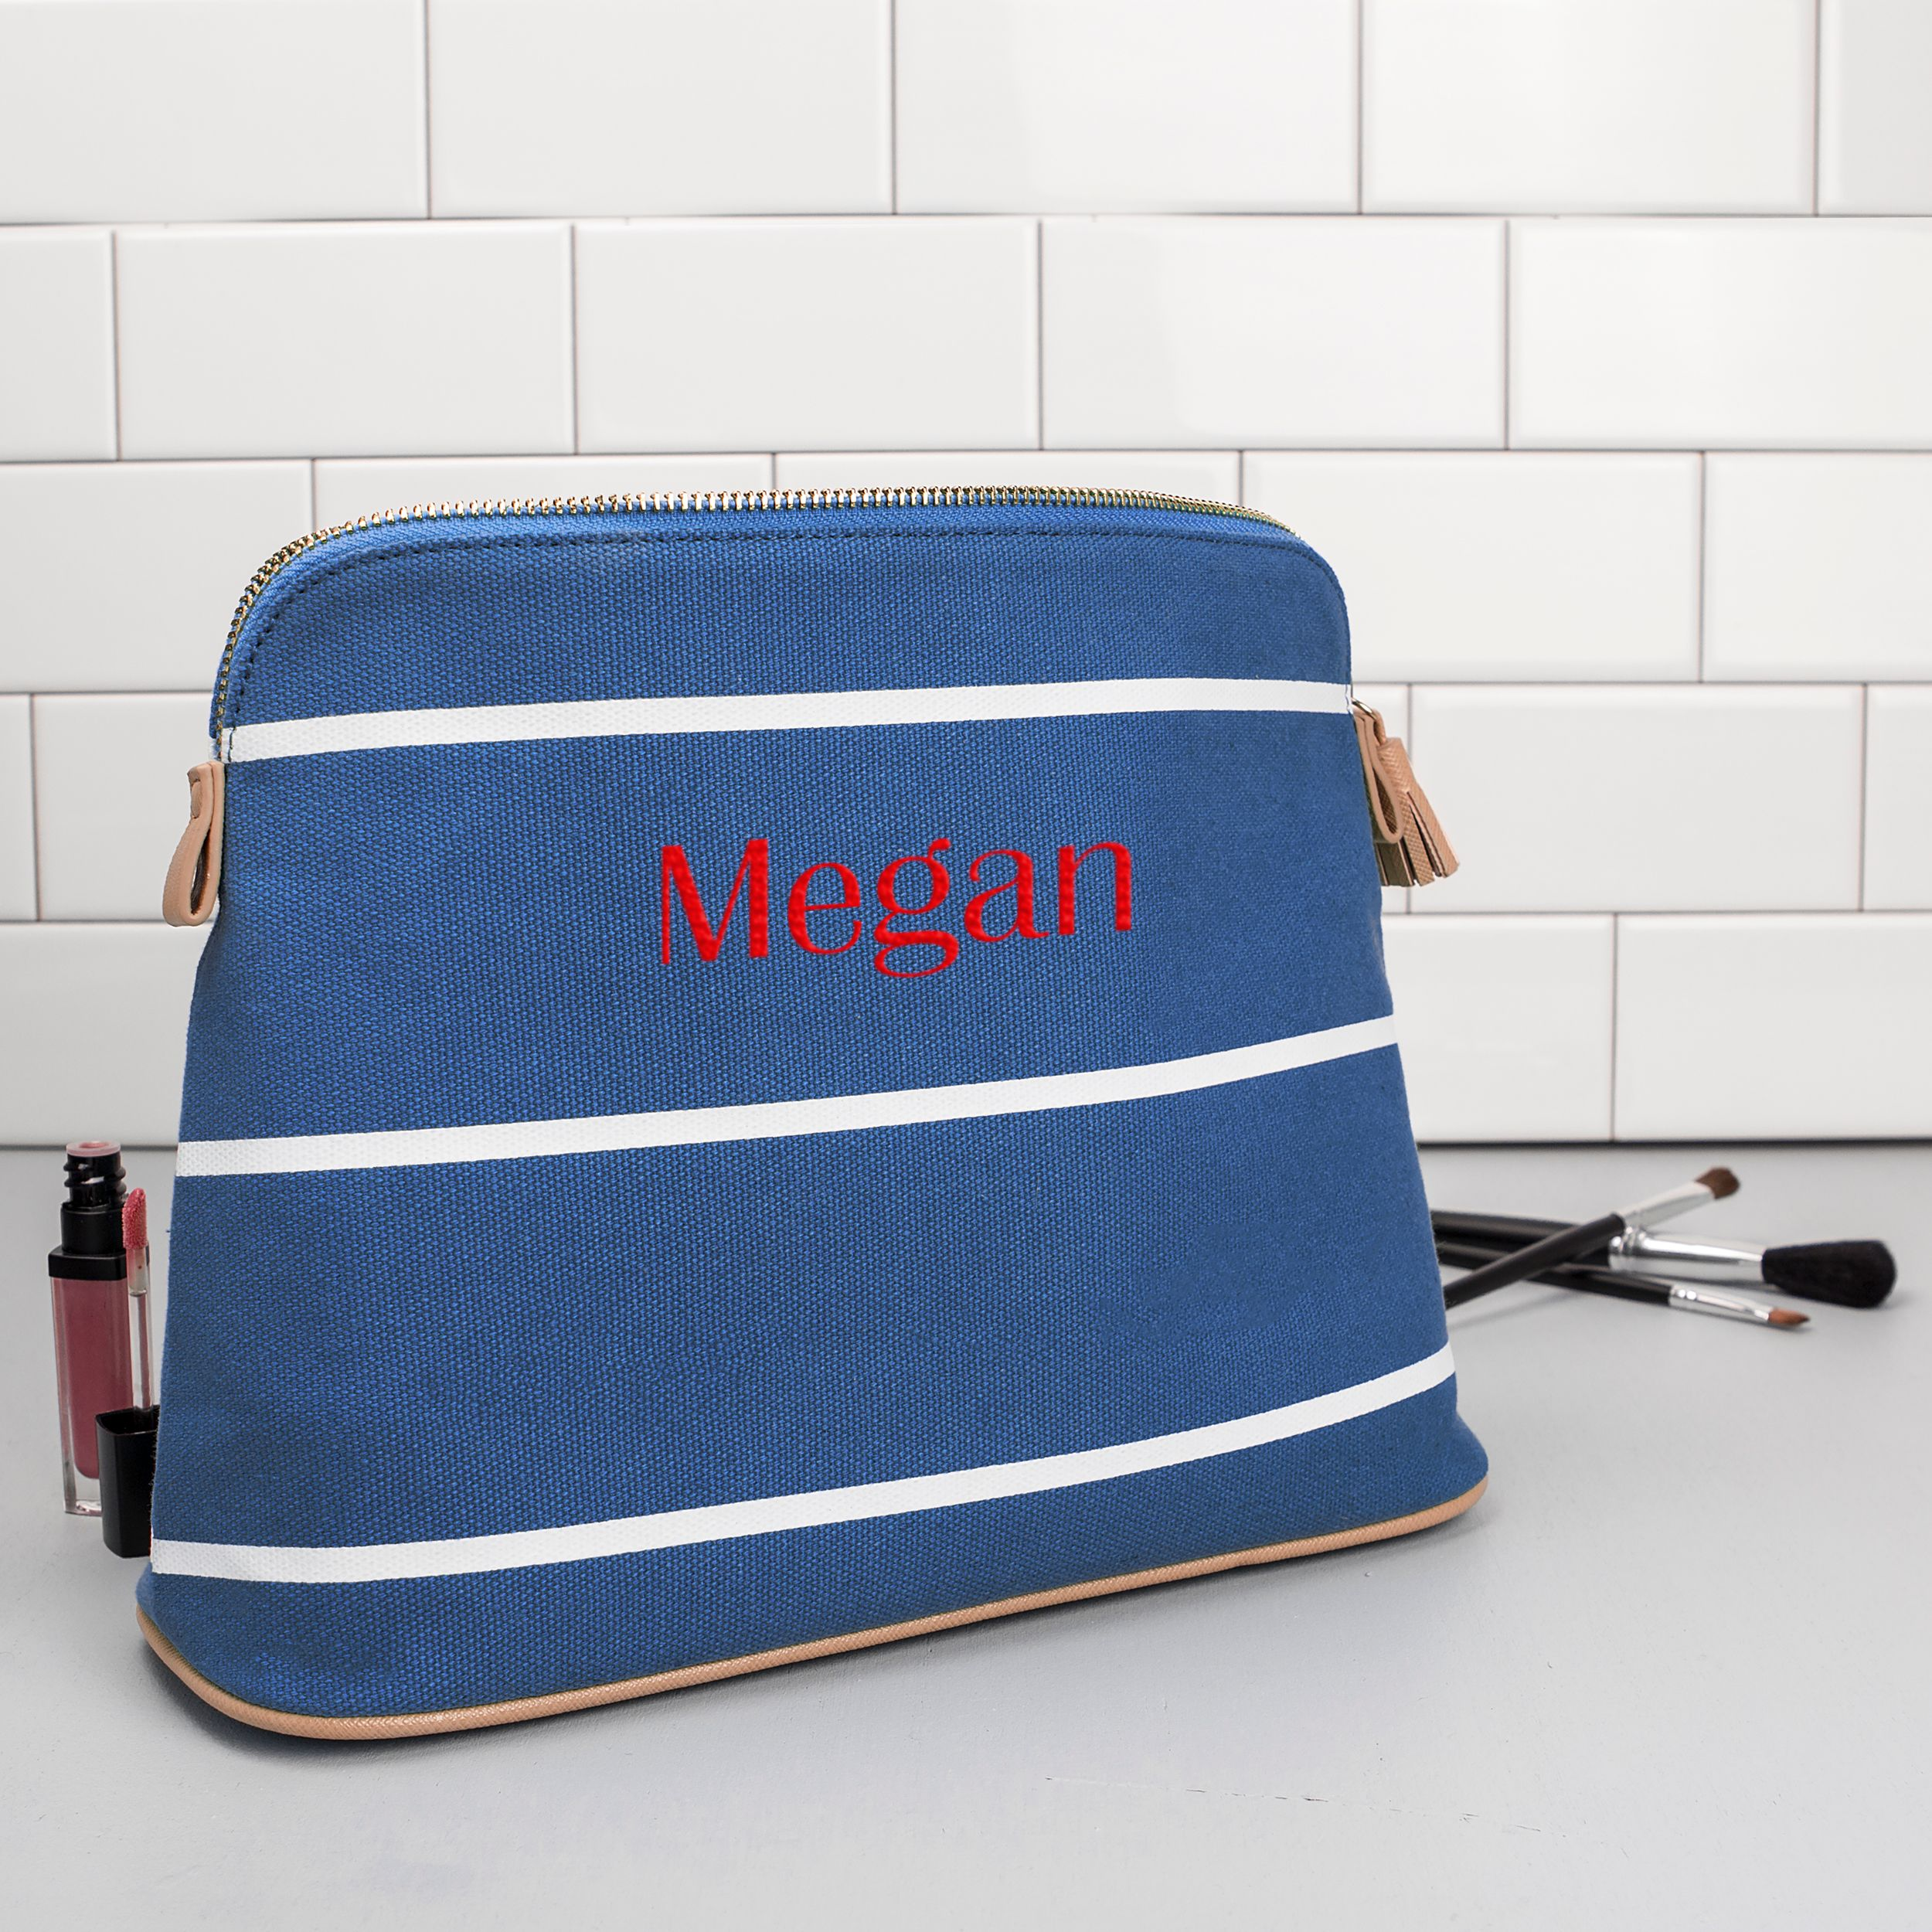 Personalized Striped Cosmetic Bag in Blue